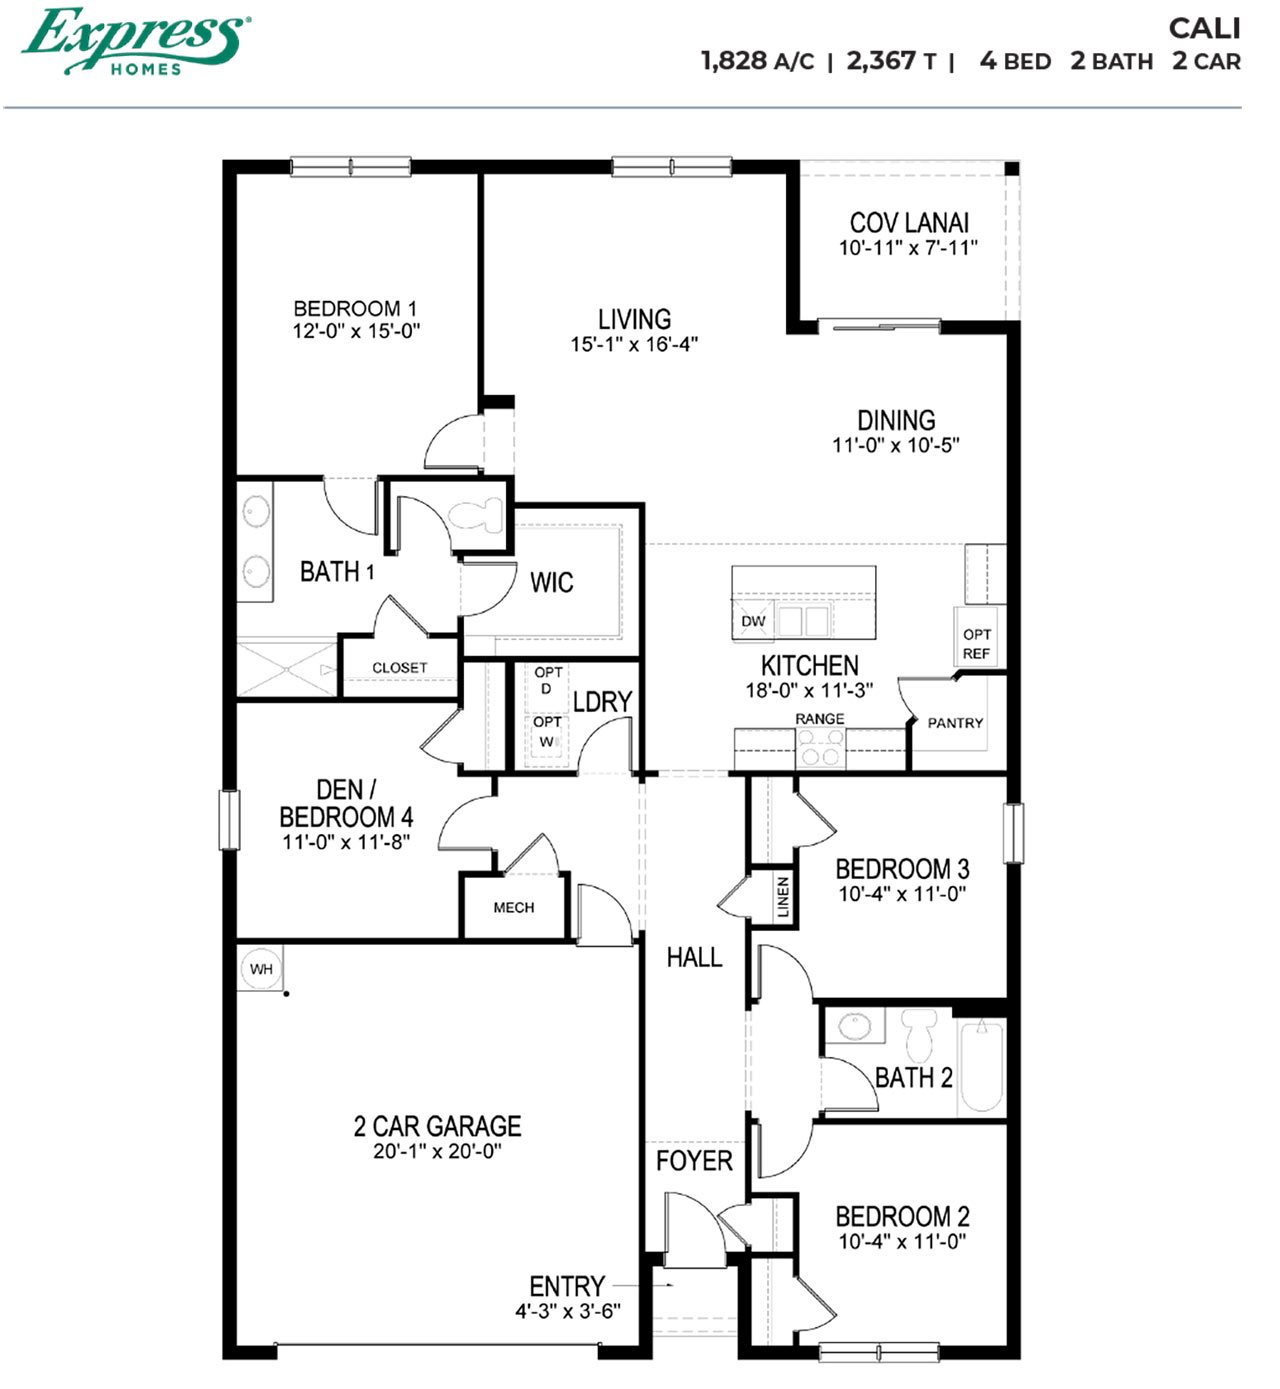 Cali Express Homes Plan At Brightwater In North Fort Myers Fl By D R Horton